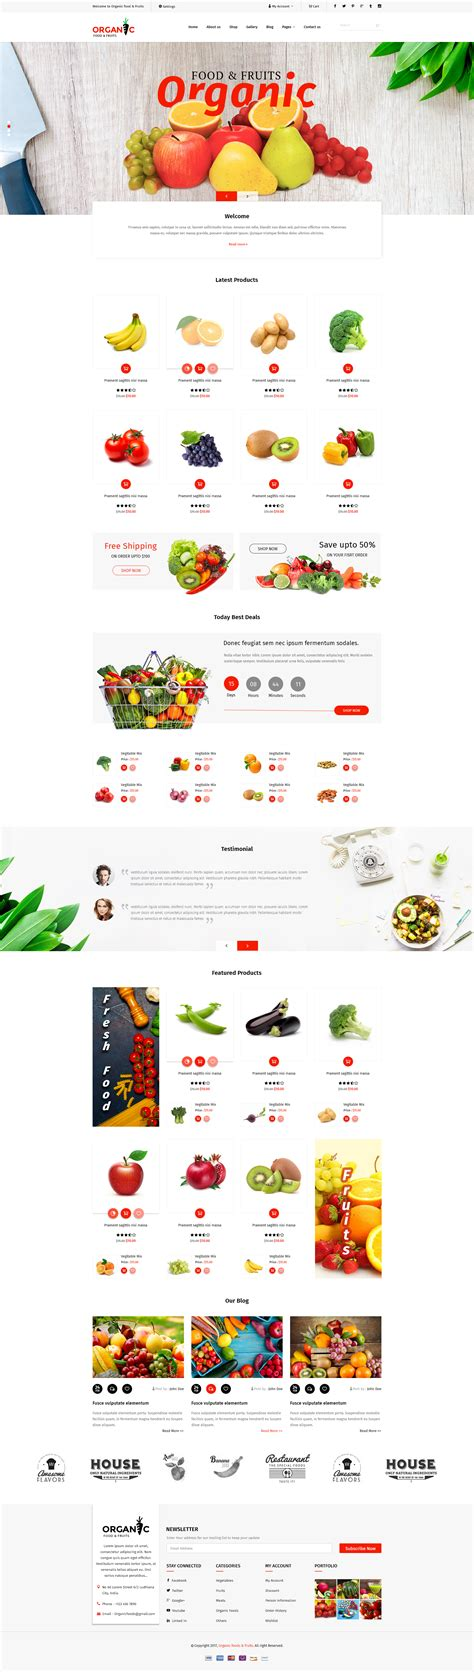 themeforest organic food organic foods and fruits psd template by tmdstudio